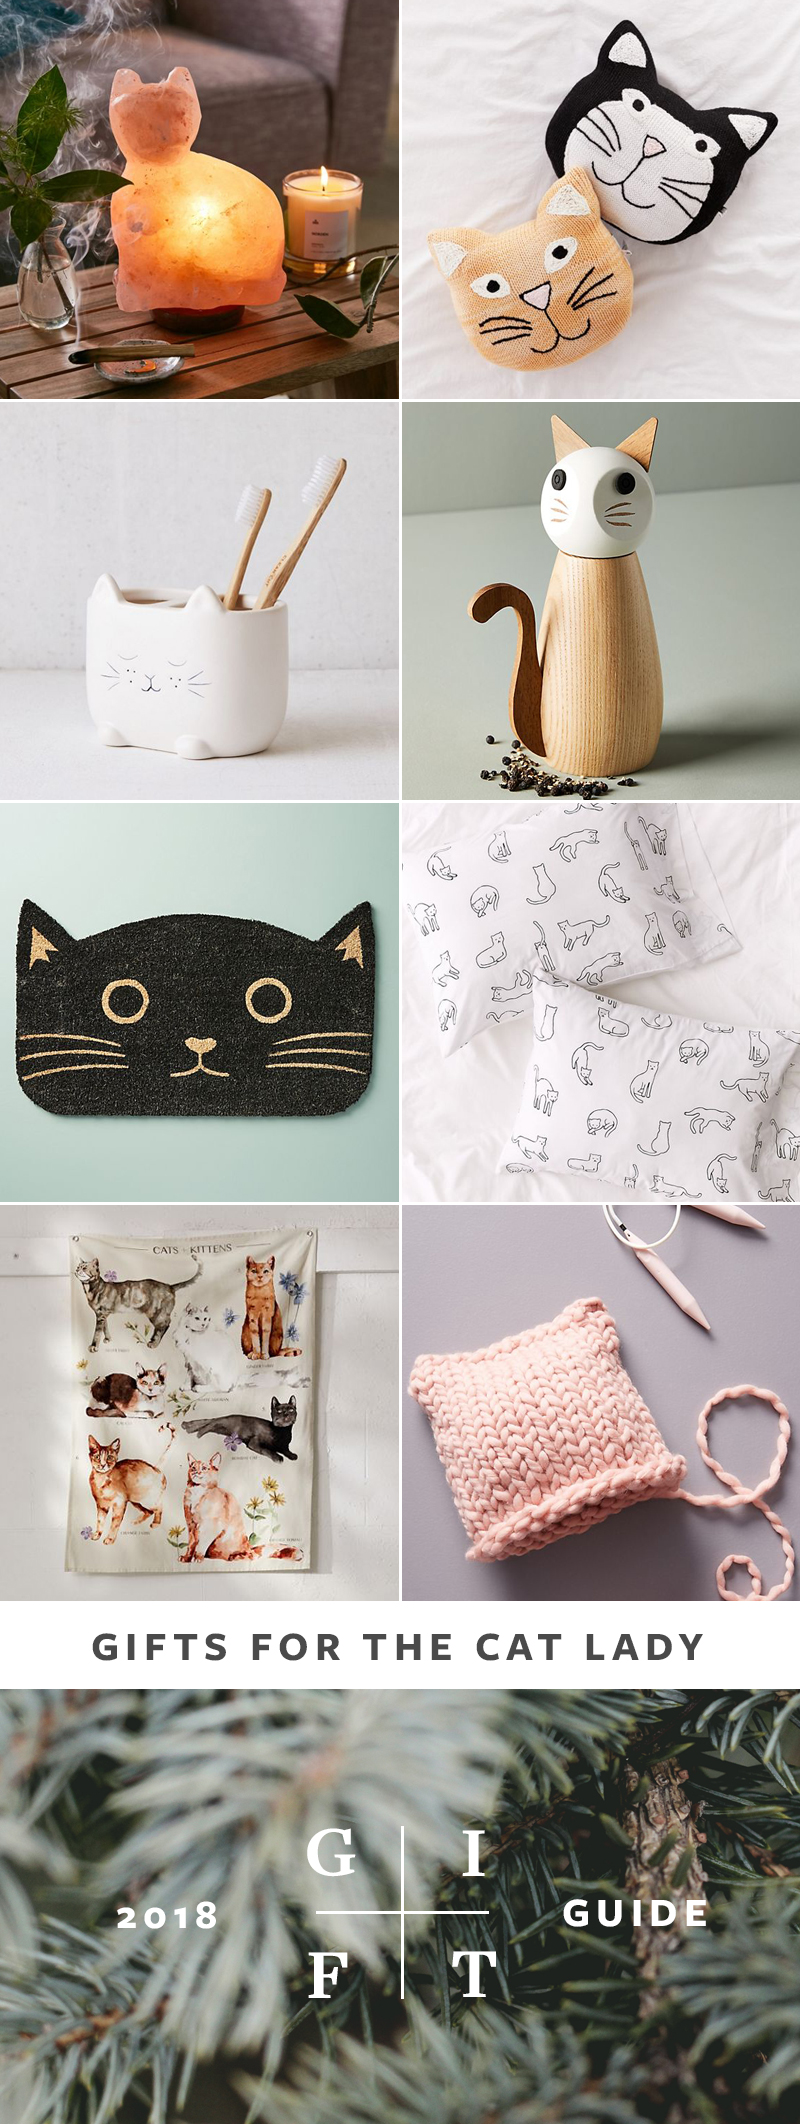 Cat Lady Gift Ideas, Gift Guide for Christmas & Holidays 2018 via jojotastic.com #giftguide #giftidea #giftgiving #gifts #presents #christmaspresents #christmasgiftideas #christmasgift #catlady #cats #cat